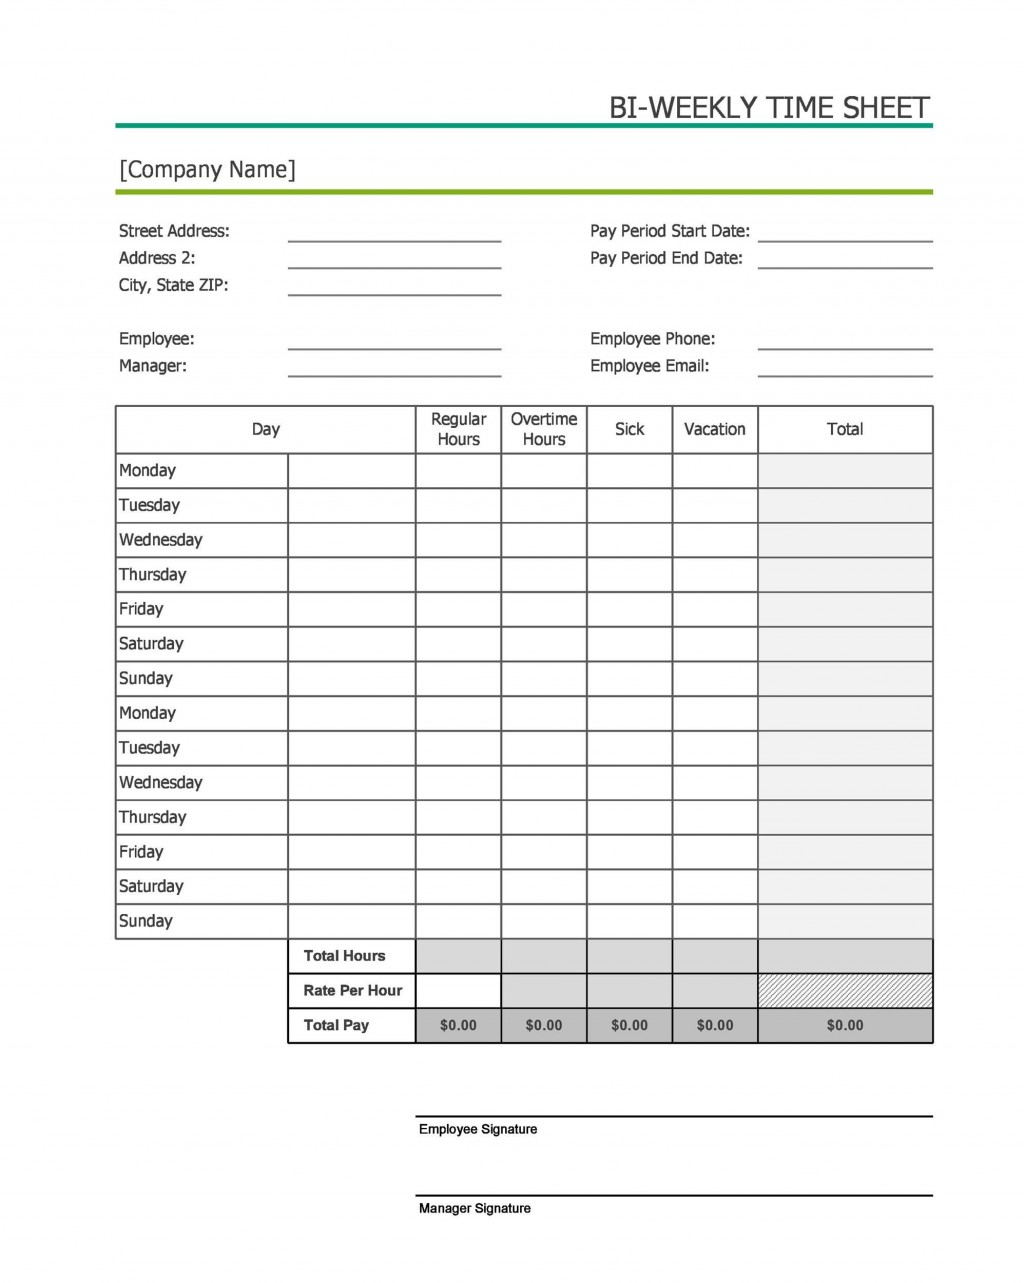 006 Impressive Free Weekly Timesheet Template Highest Quality  For Multiple Employee Biweekly Excel With FormulaLarge